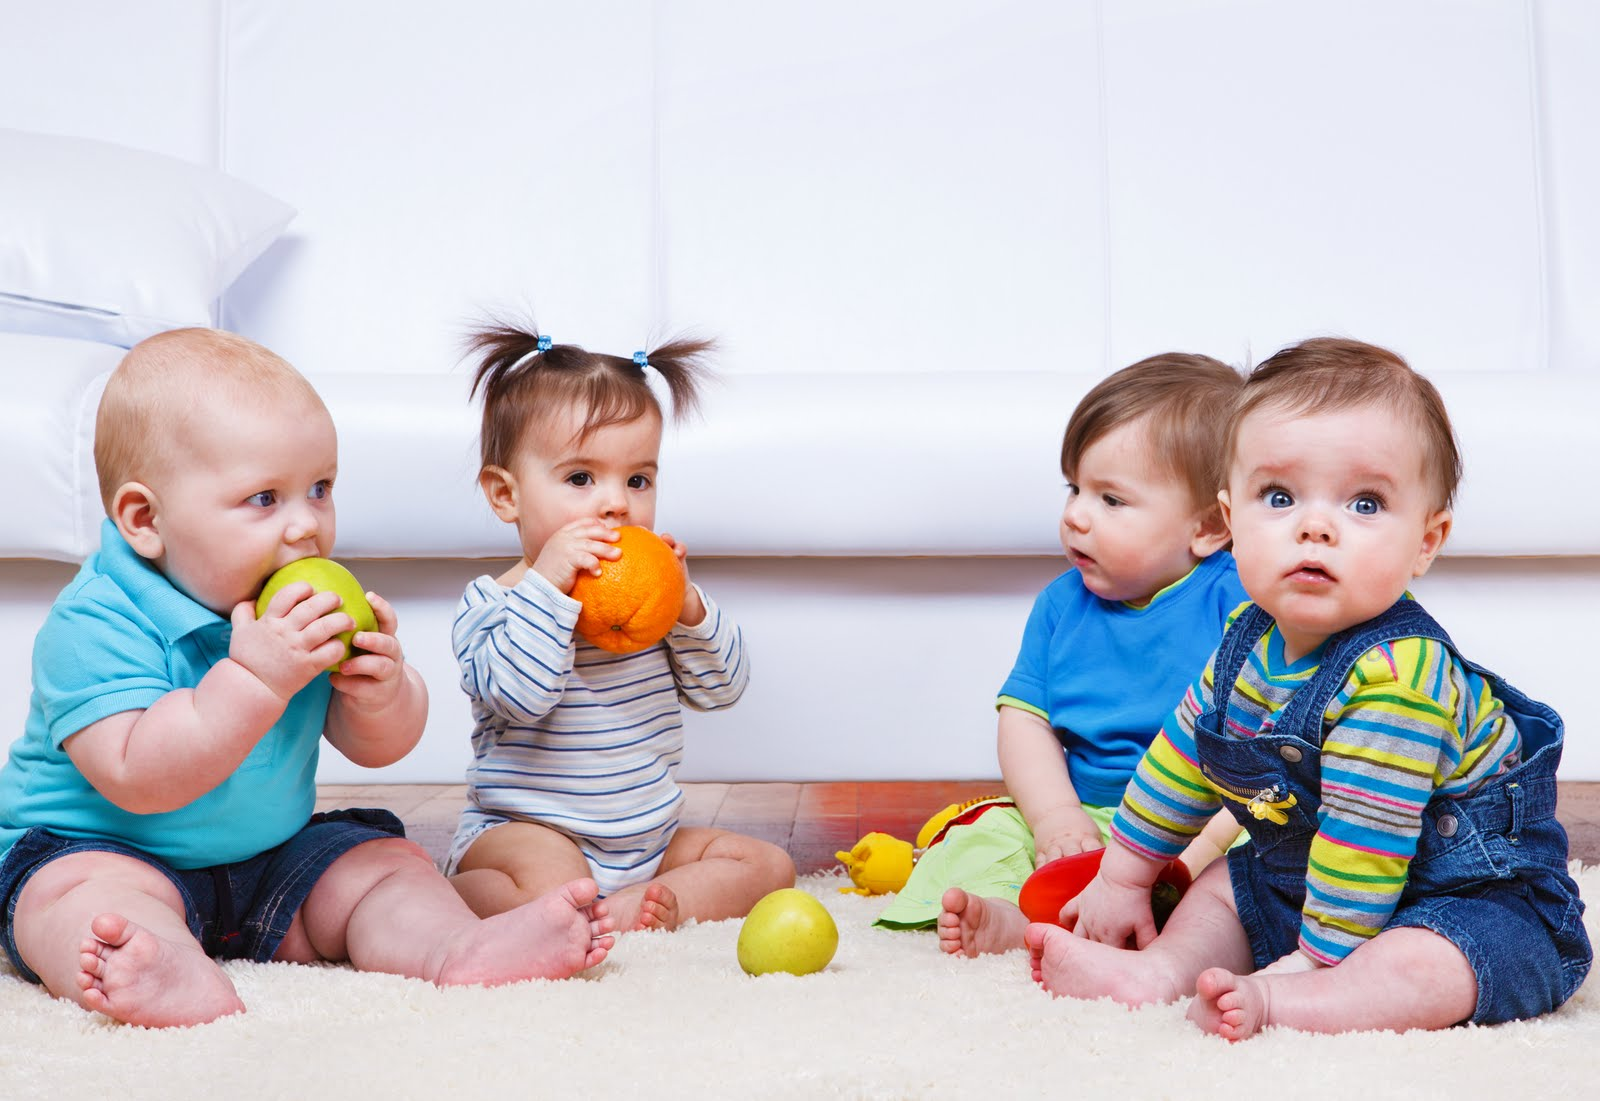 Group-Of-Babies-Playing.jpg